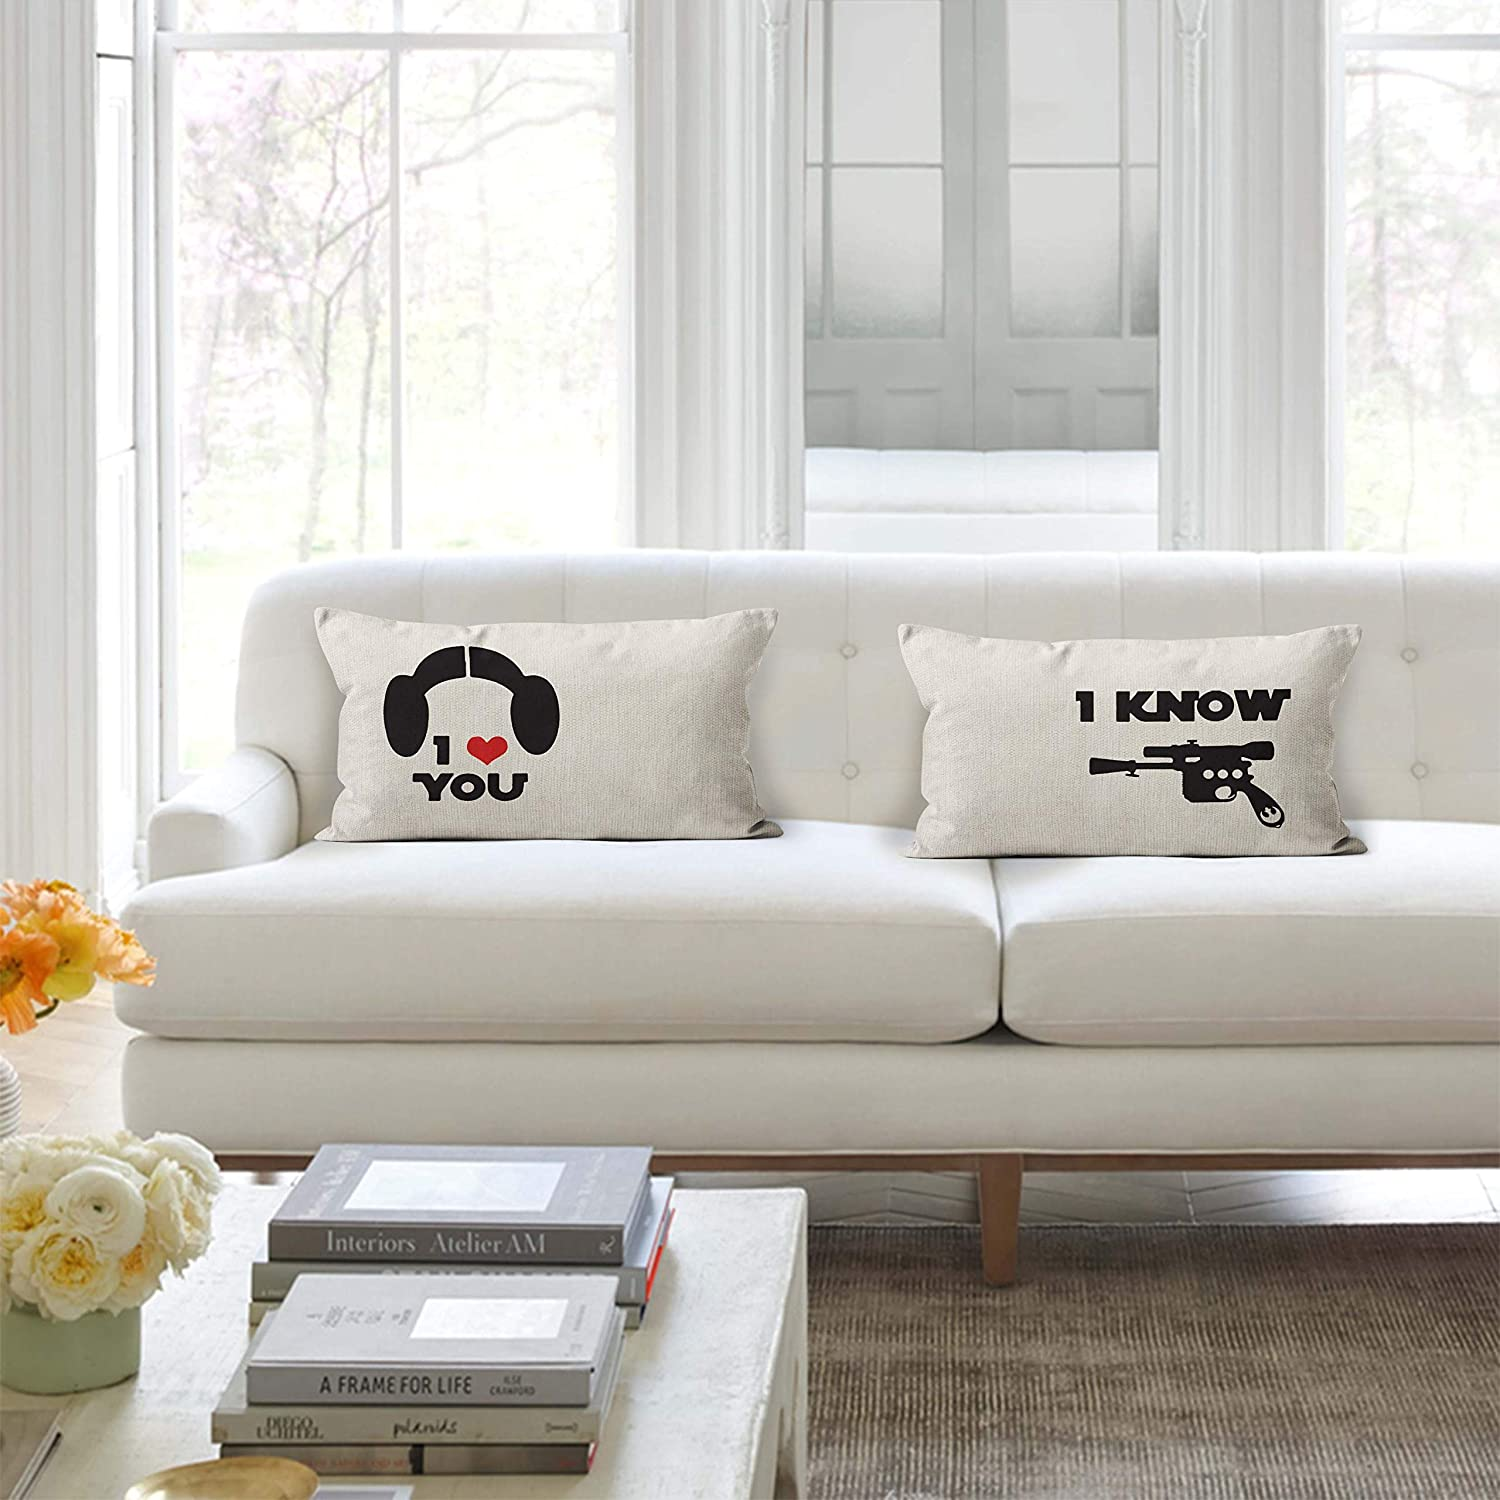 his-and-hers-gifts-cushions